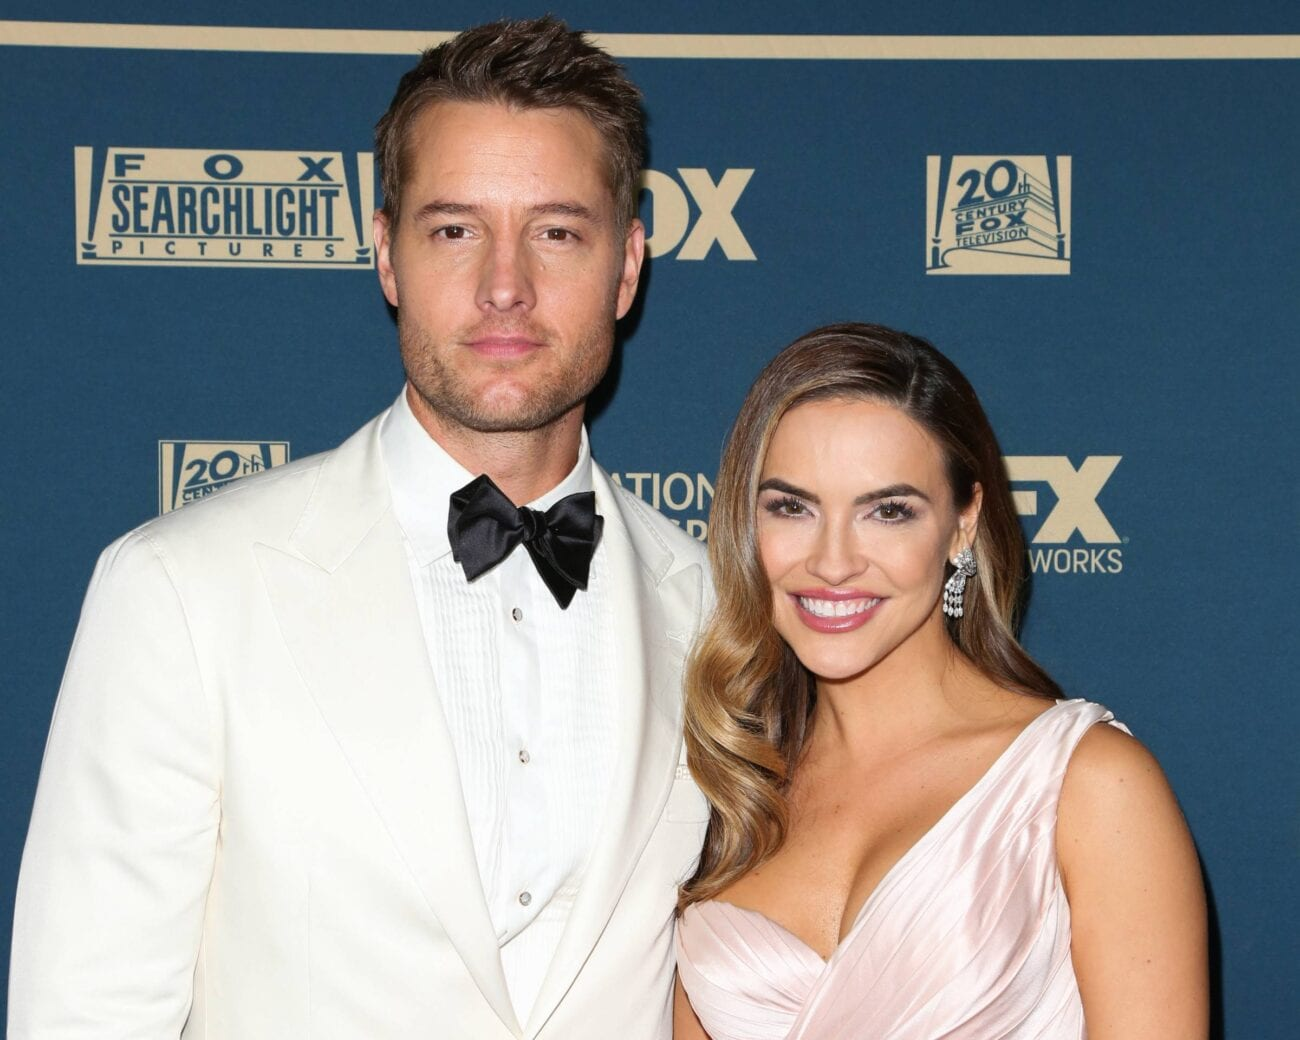 The divorce between Justin Hartley and Chrishell Stause seems odd, but nobody knows exactly why.